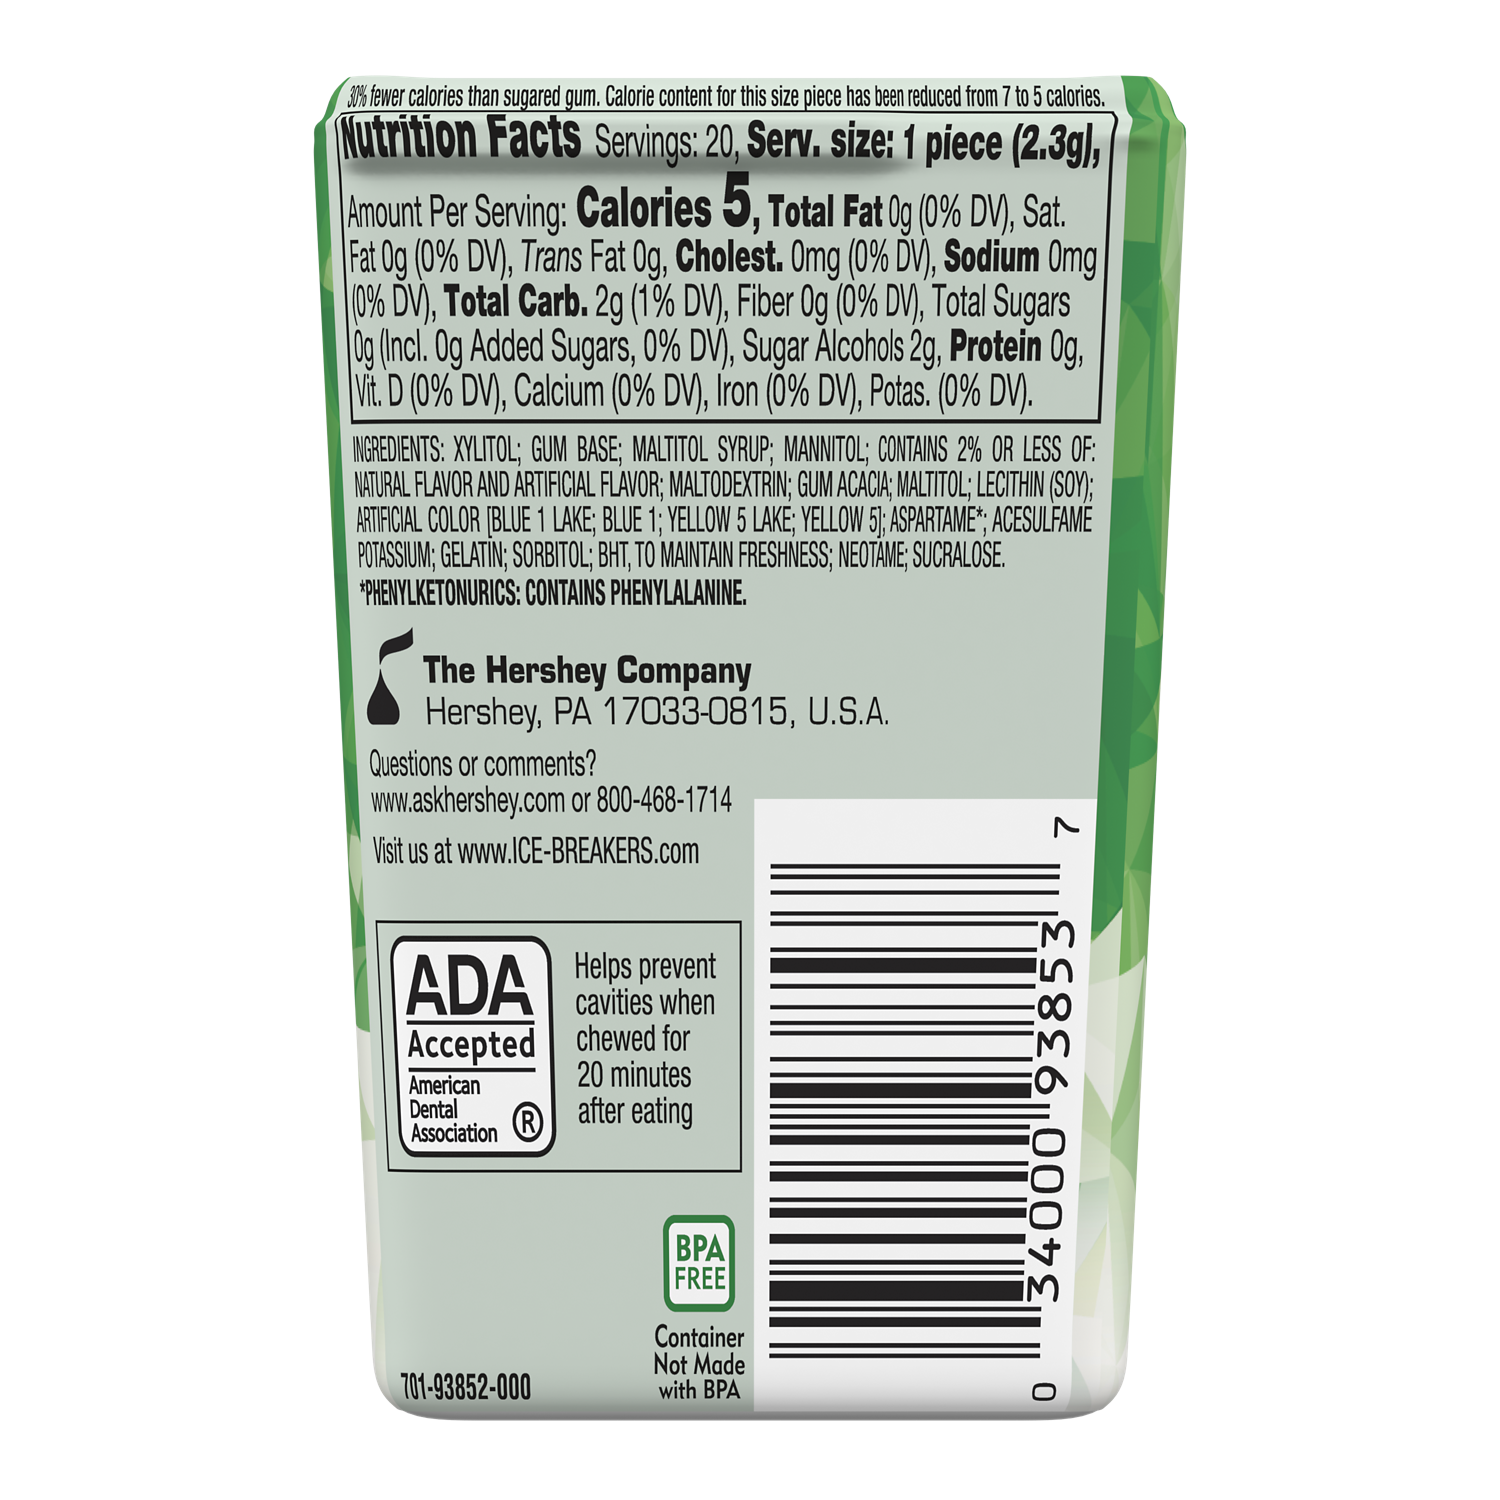 ICE BREAKERS ICE CUBES Spearmint Sugar Free Gum, 1.62 oz thin pack, 20 pieces - Back of Package